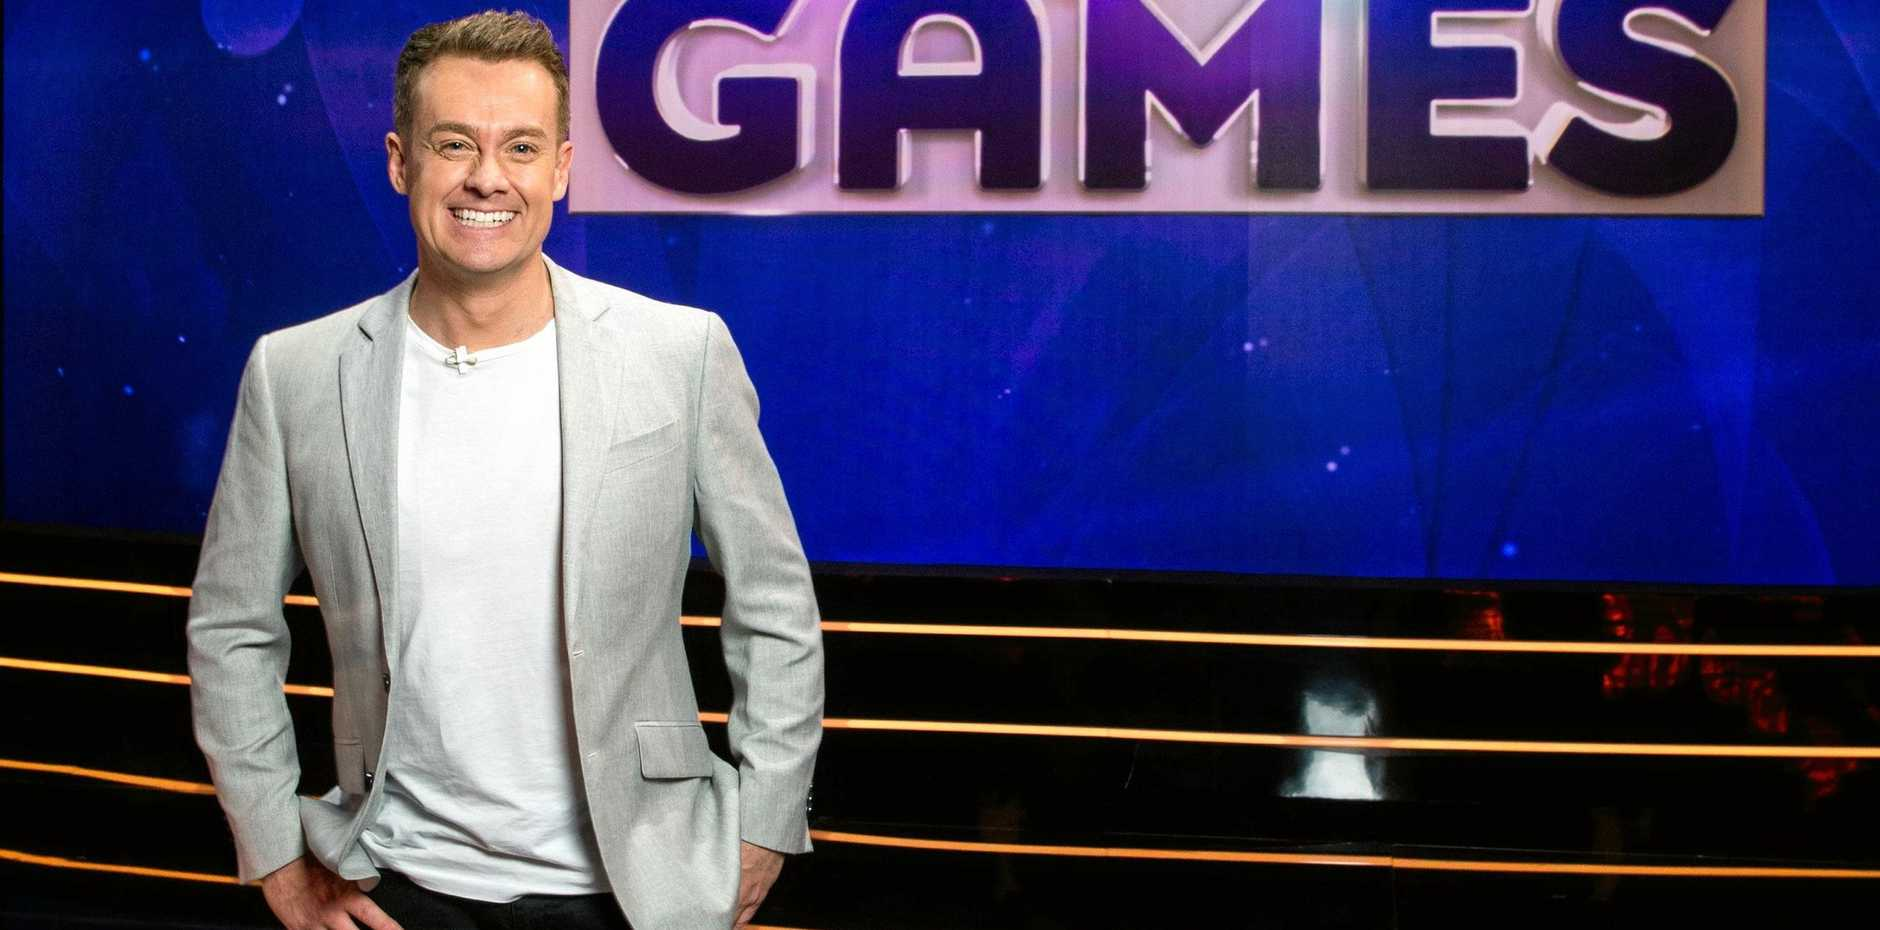 Grant Denyer hosts the new game show Game of Games.